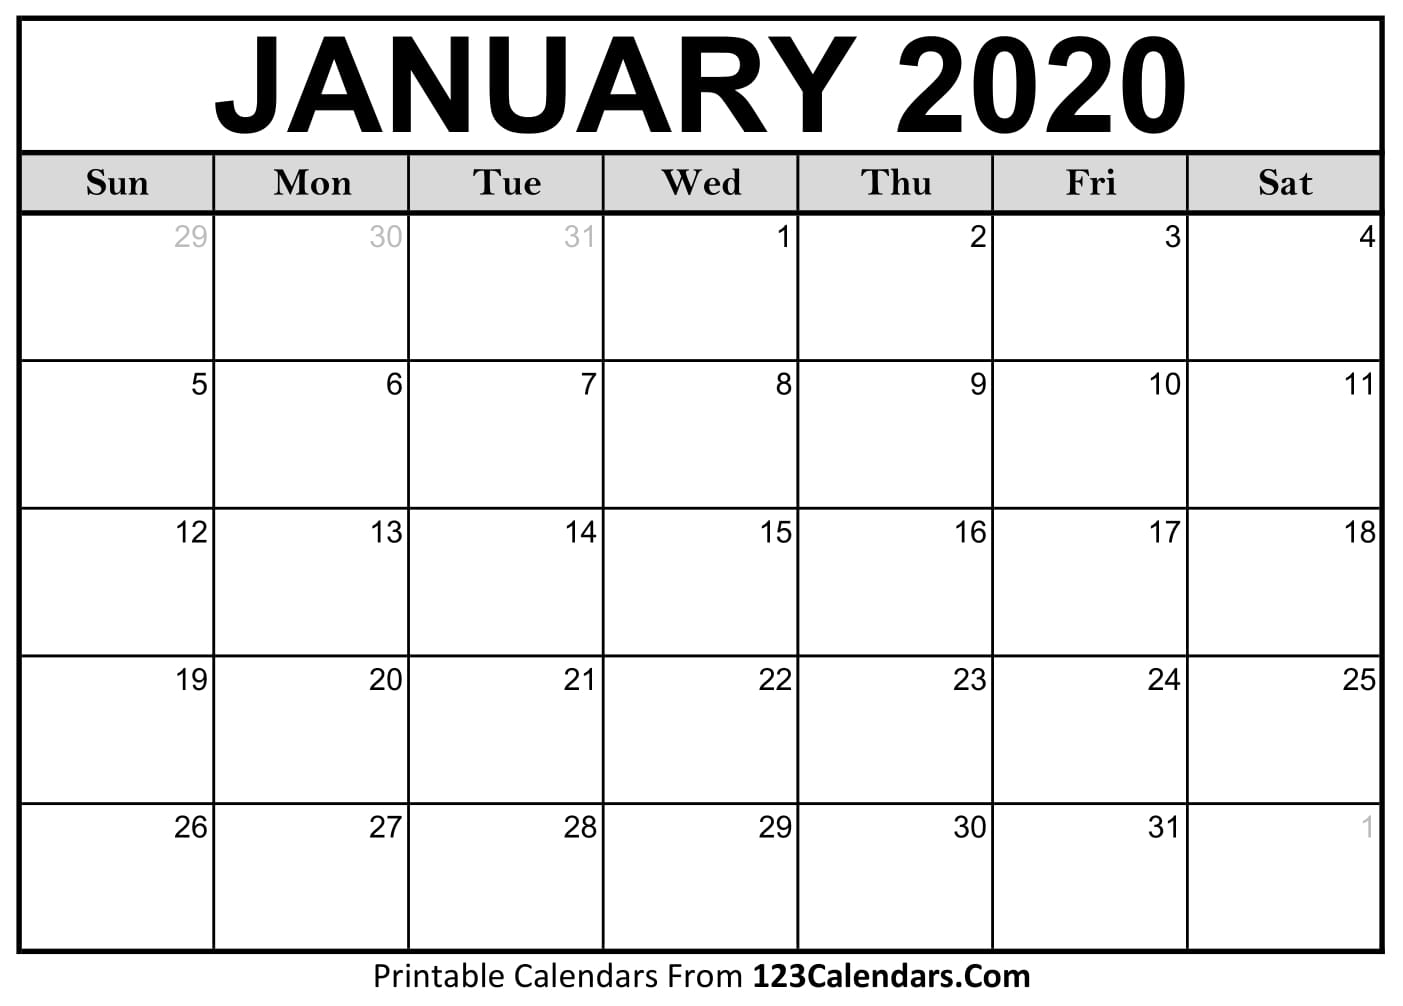 January Monthly Calendar 2020  Bolan.horizonconsulting.co with Monthly Calendar 2020 Printable